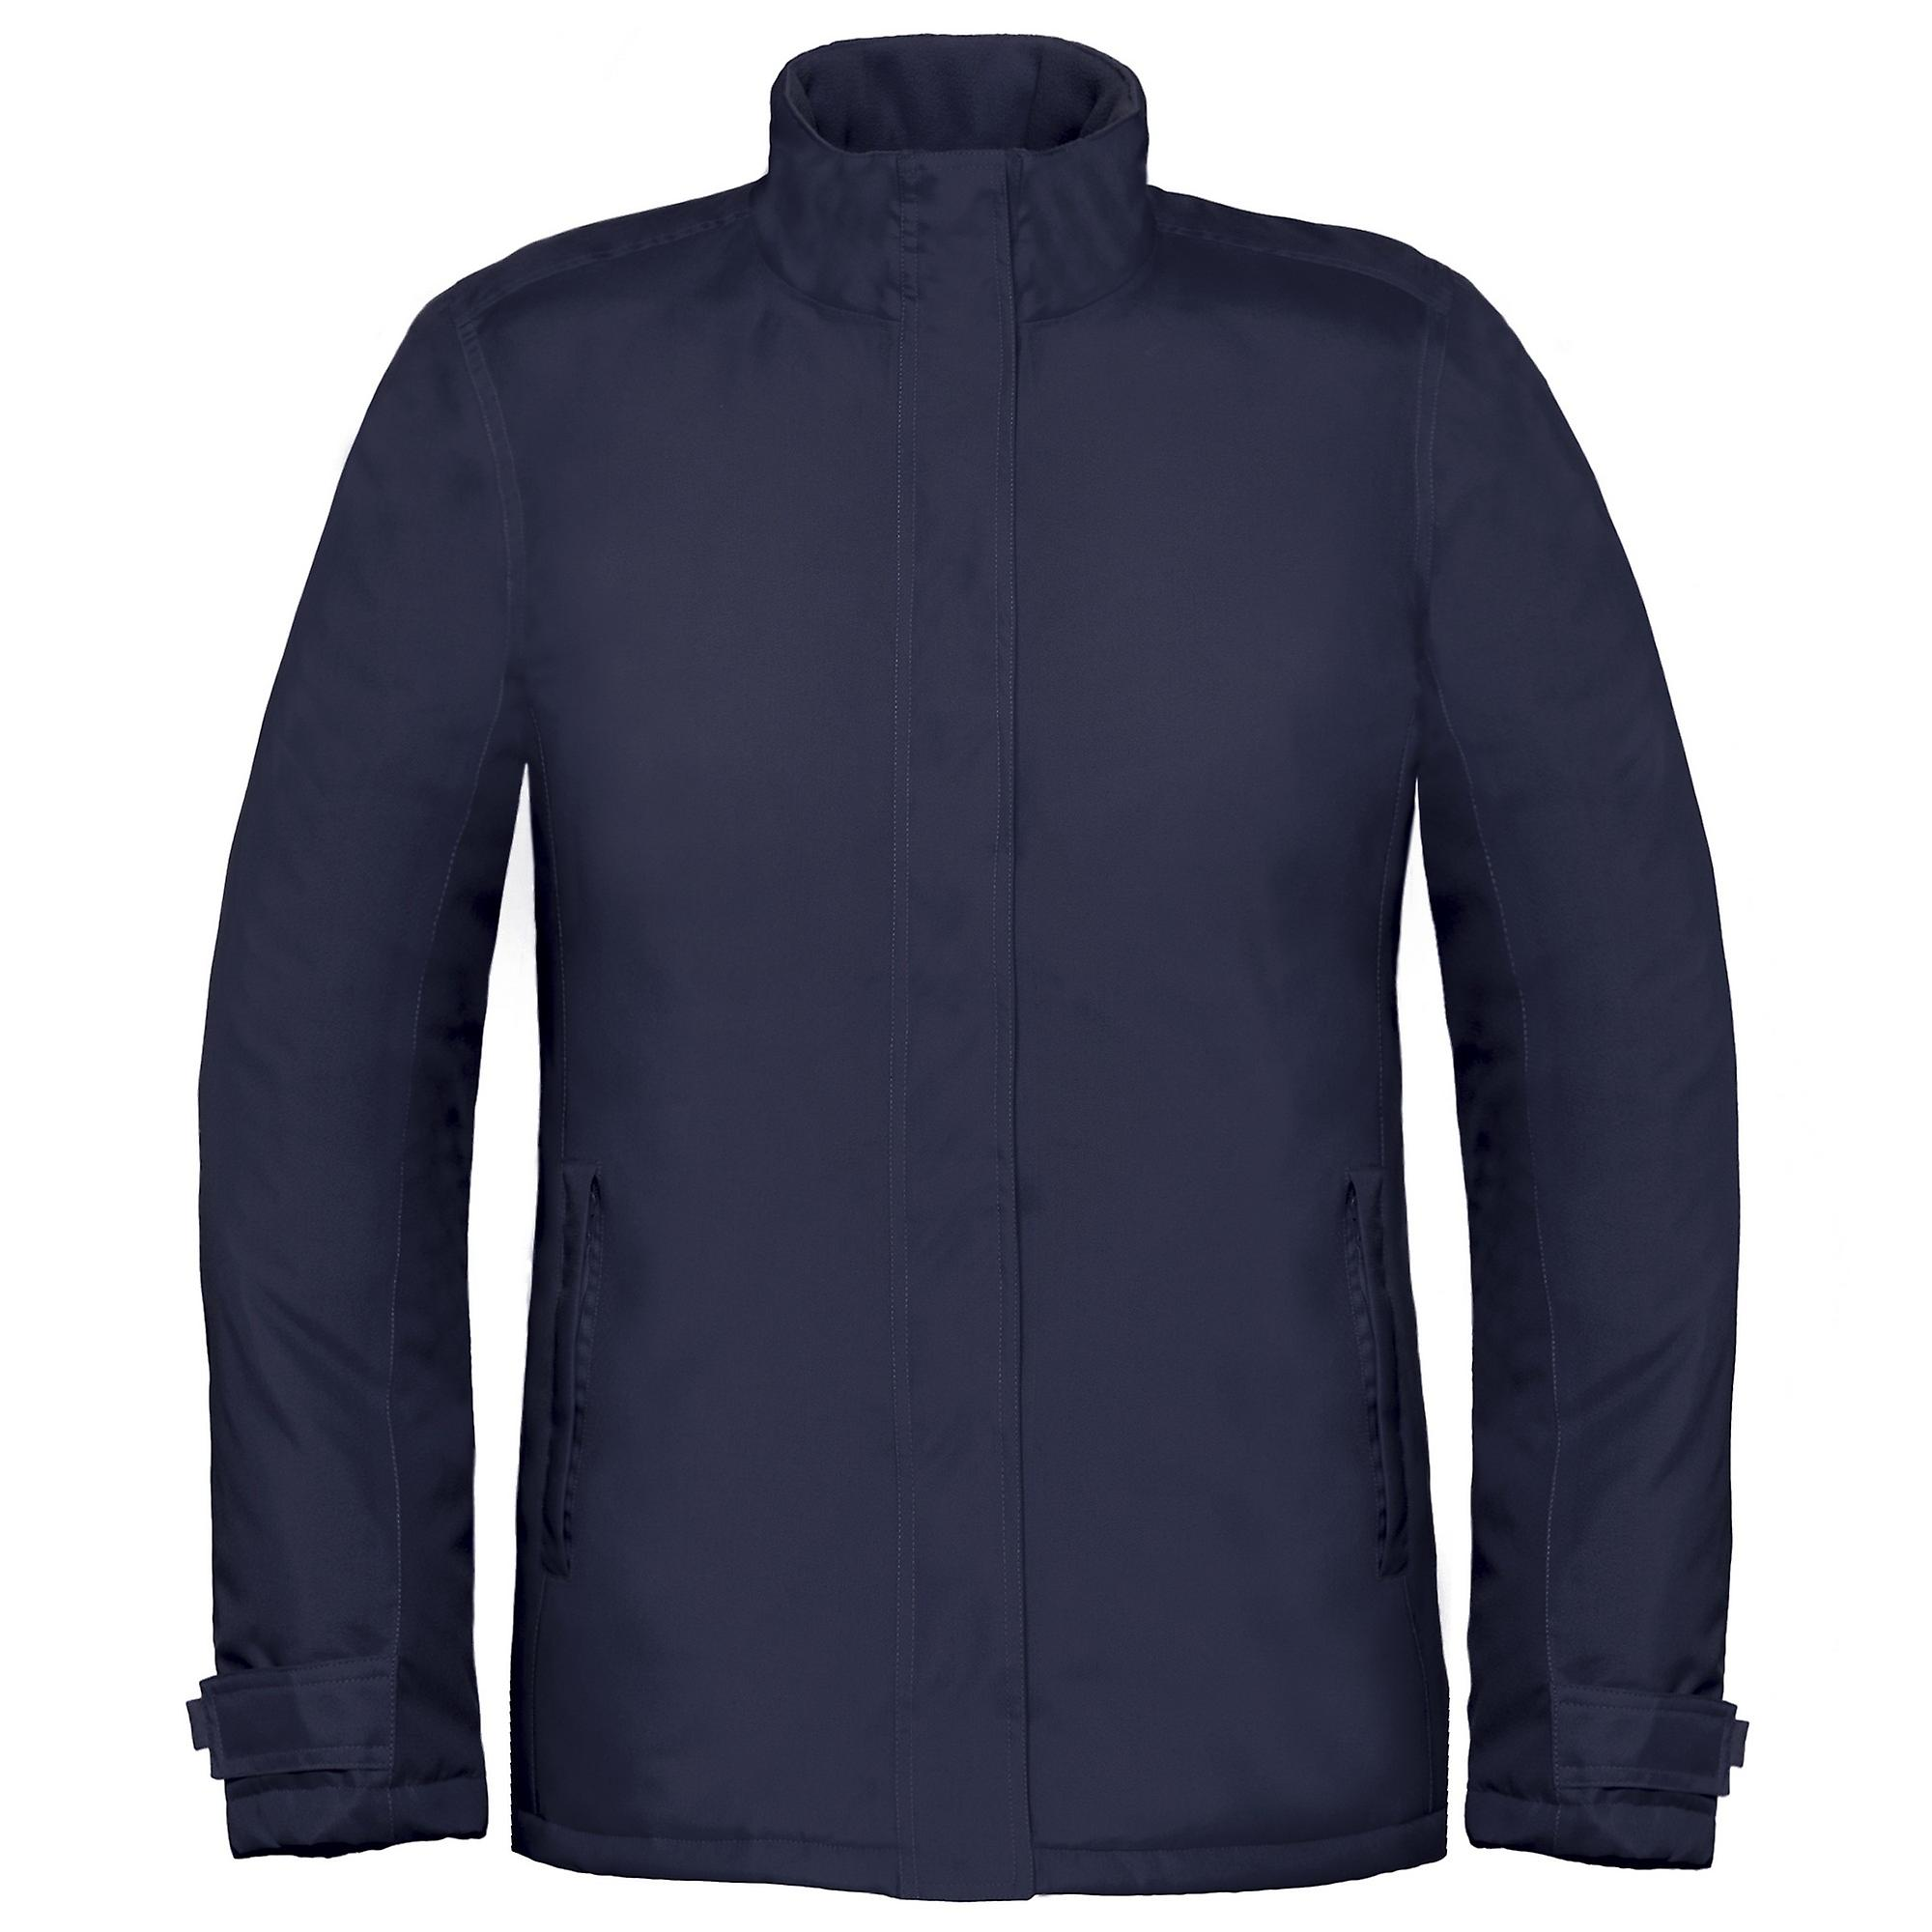 8bd2695be B&C Womens/Ladies Premium Real+ Windproof Waterproof Thermo-Isolated Jacket  | Fruugo